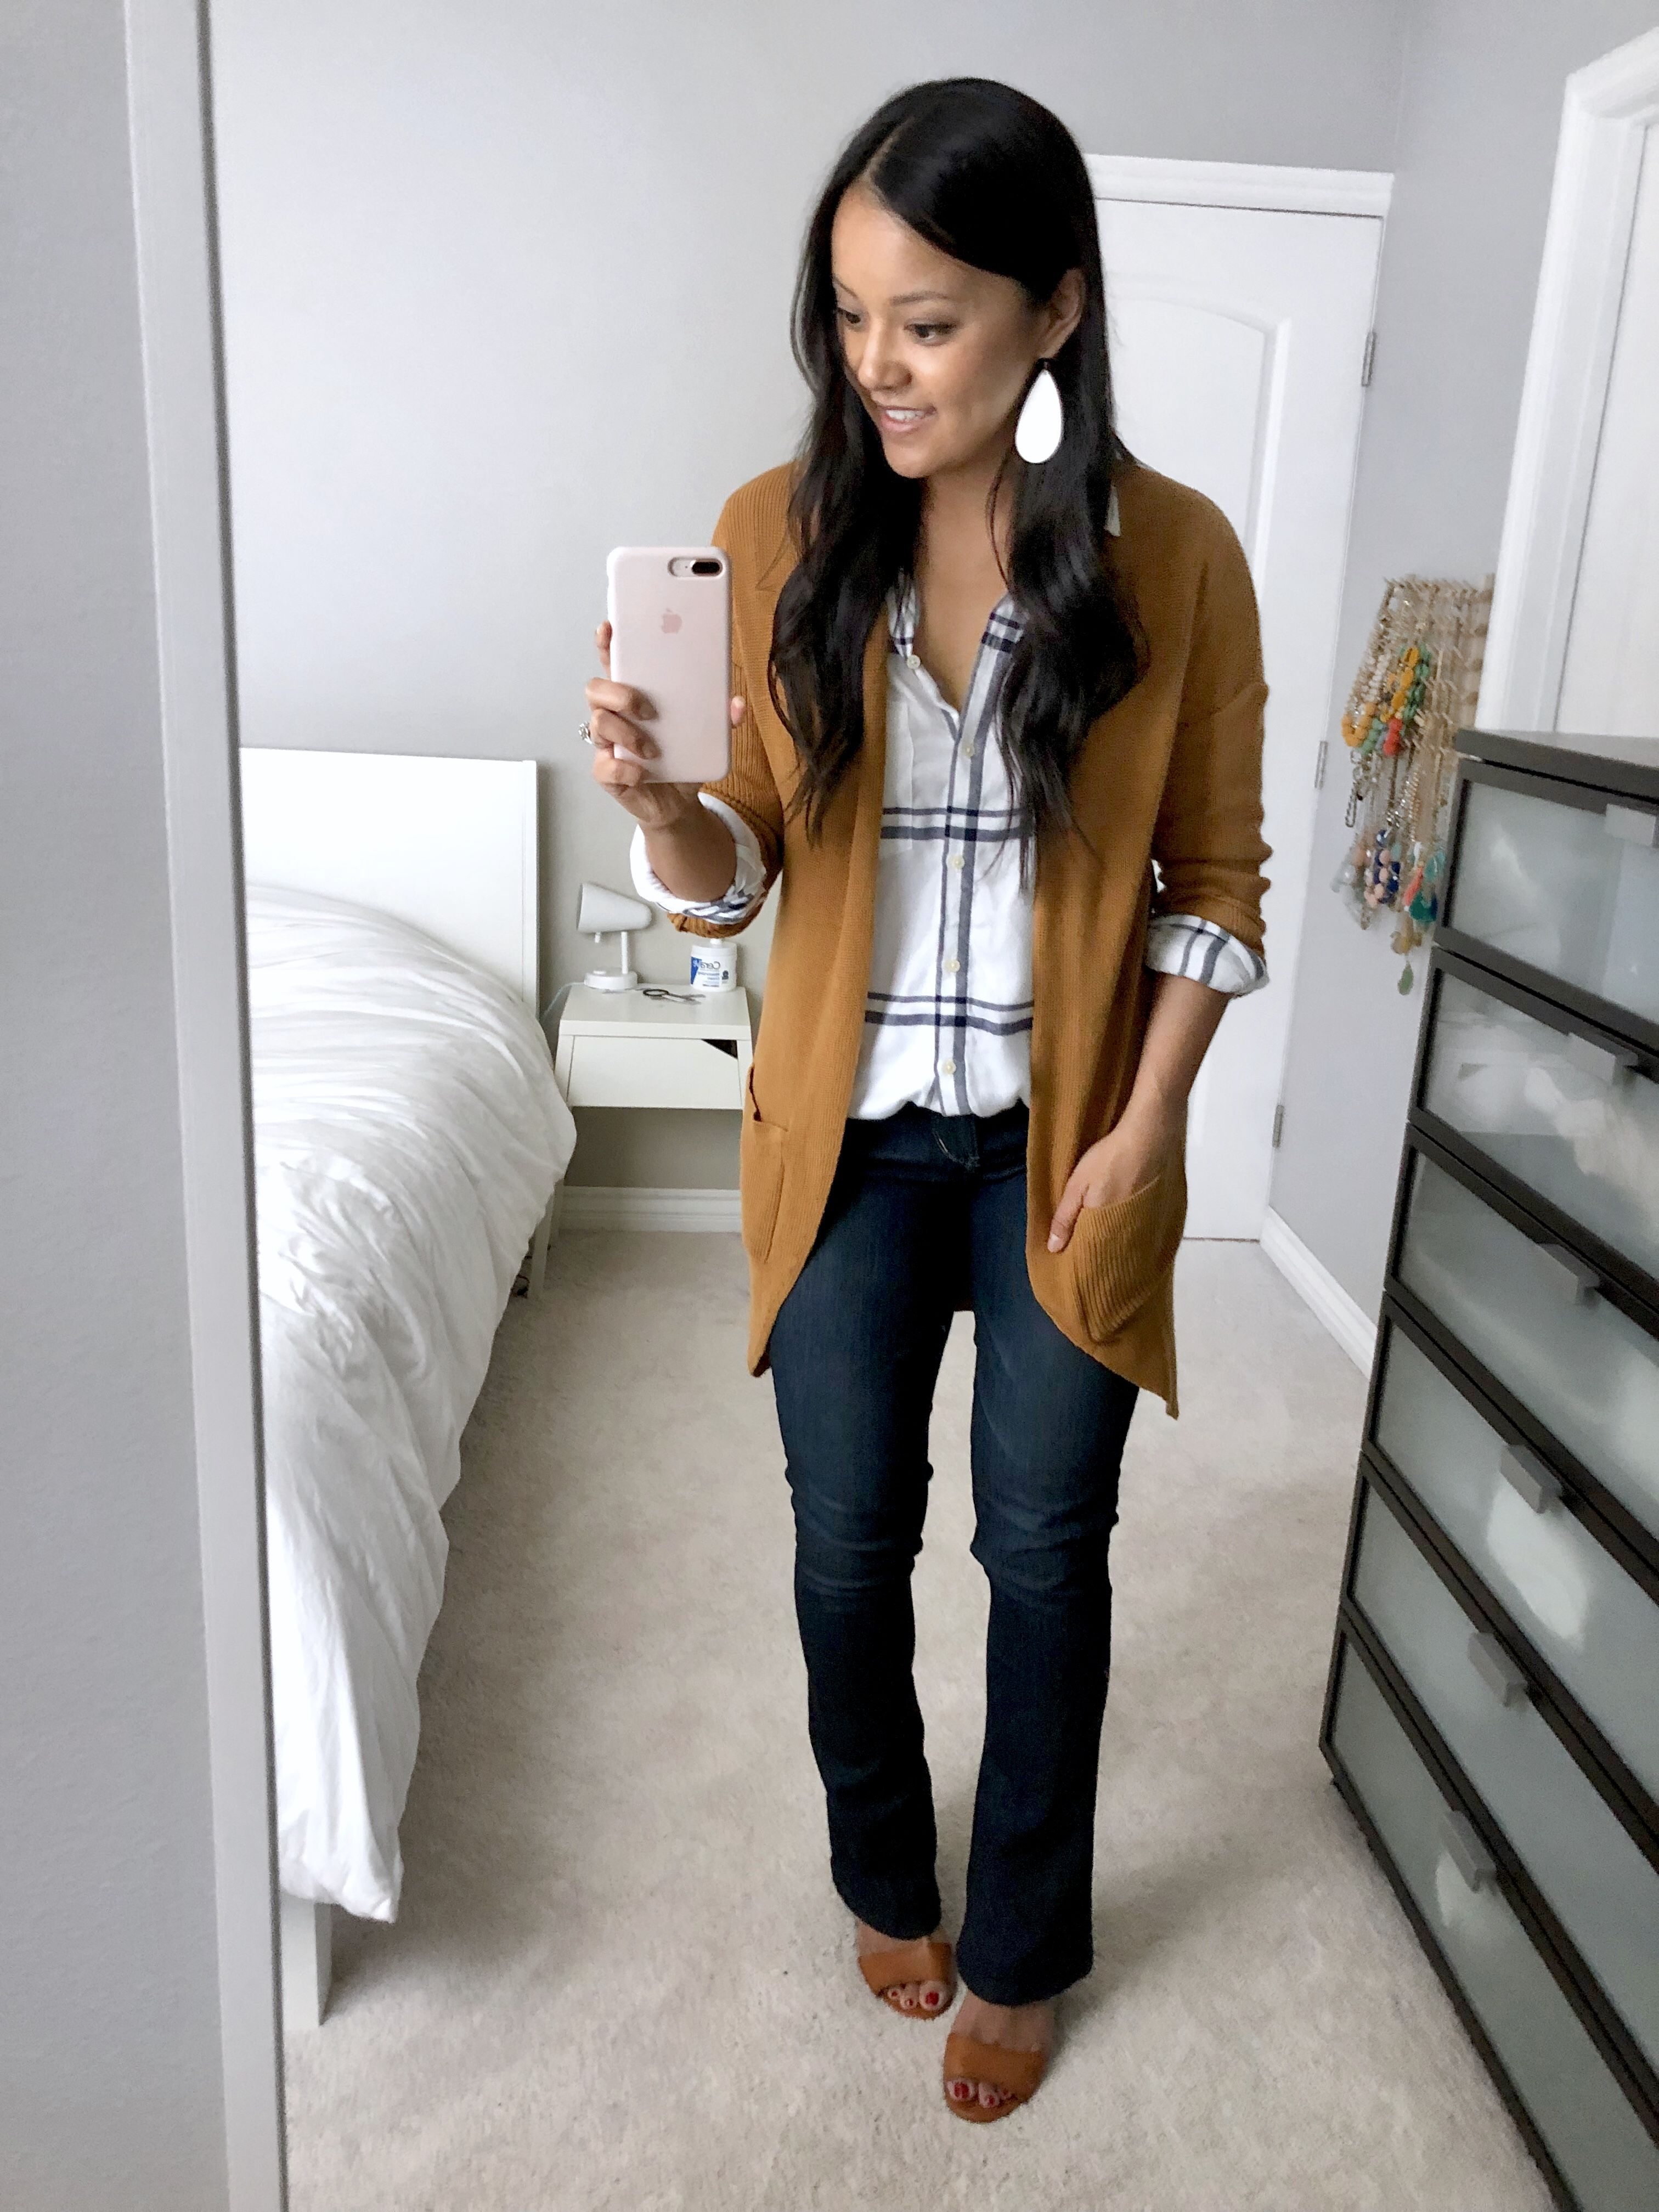 Flannel shirt with suit  Daily Outfits  Outfits for Early Fall  Casual and Business